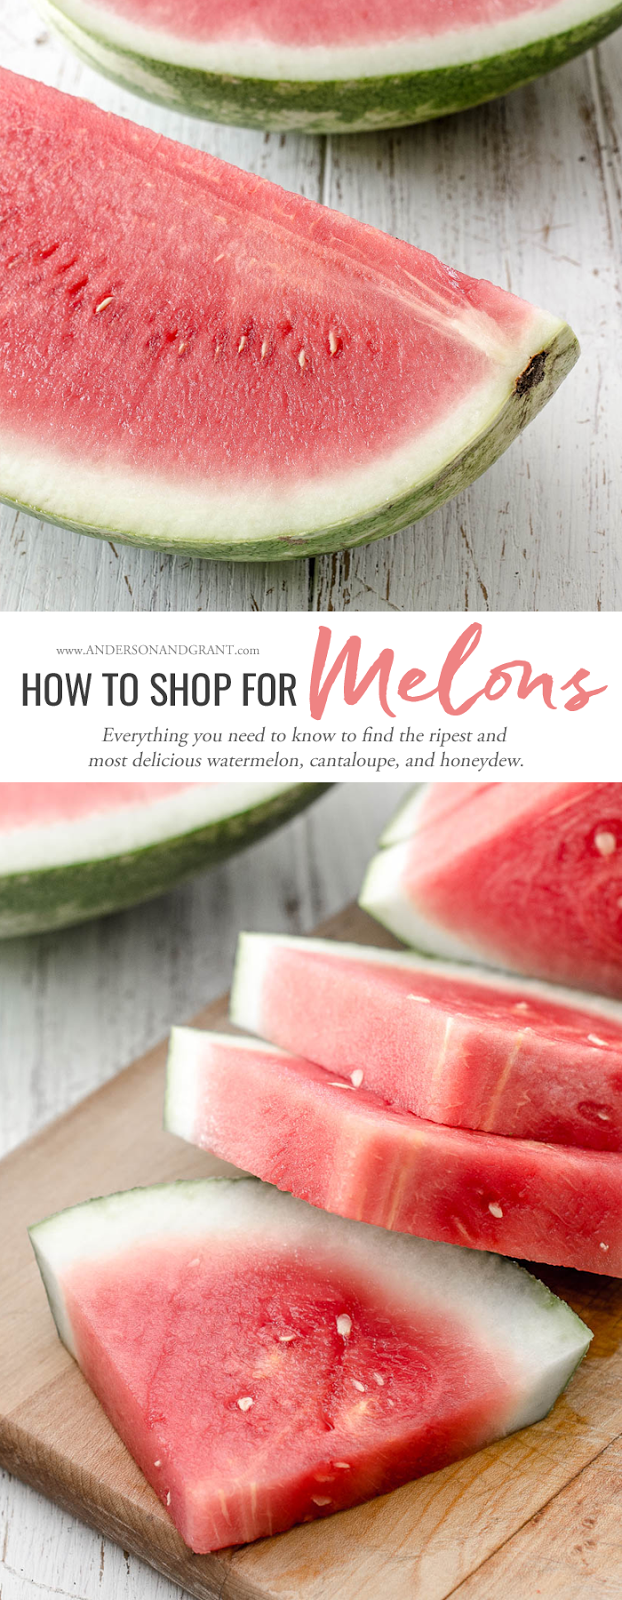 Is picking out a ripe watermelon, cantaloupe, or honeydew a hard job for you?  Check out this post filled with all the tips you need for choosing the perfect melon.  |  www.andersonandgrant.com